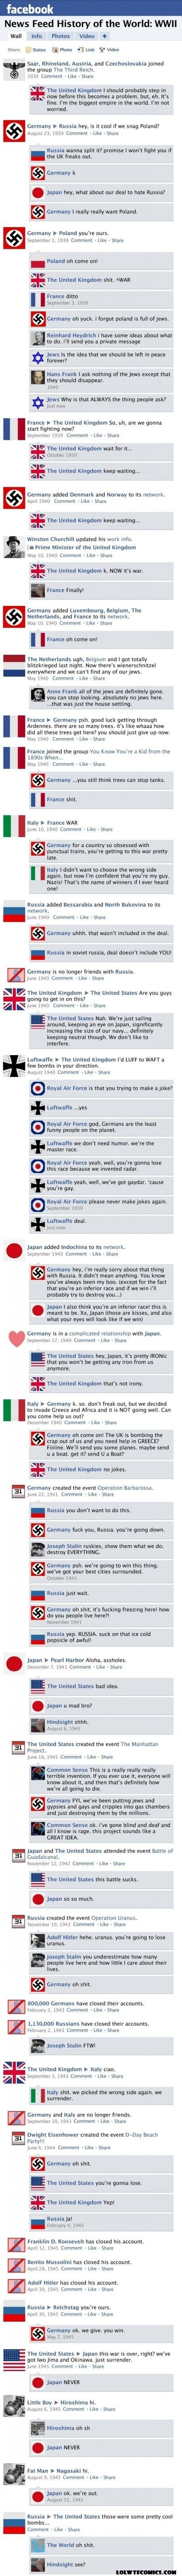 LOLwtfCOMICS : BEST LOL COMICS FROM ALL OVER THE INTERNET: FACEBOOK WWII IN FACEBOOK STATUS SECOND WORLD WAR II NEWS FEED HISTORY OF THE WORLD: WWII